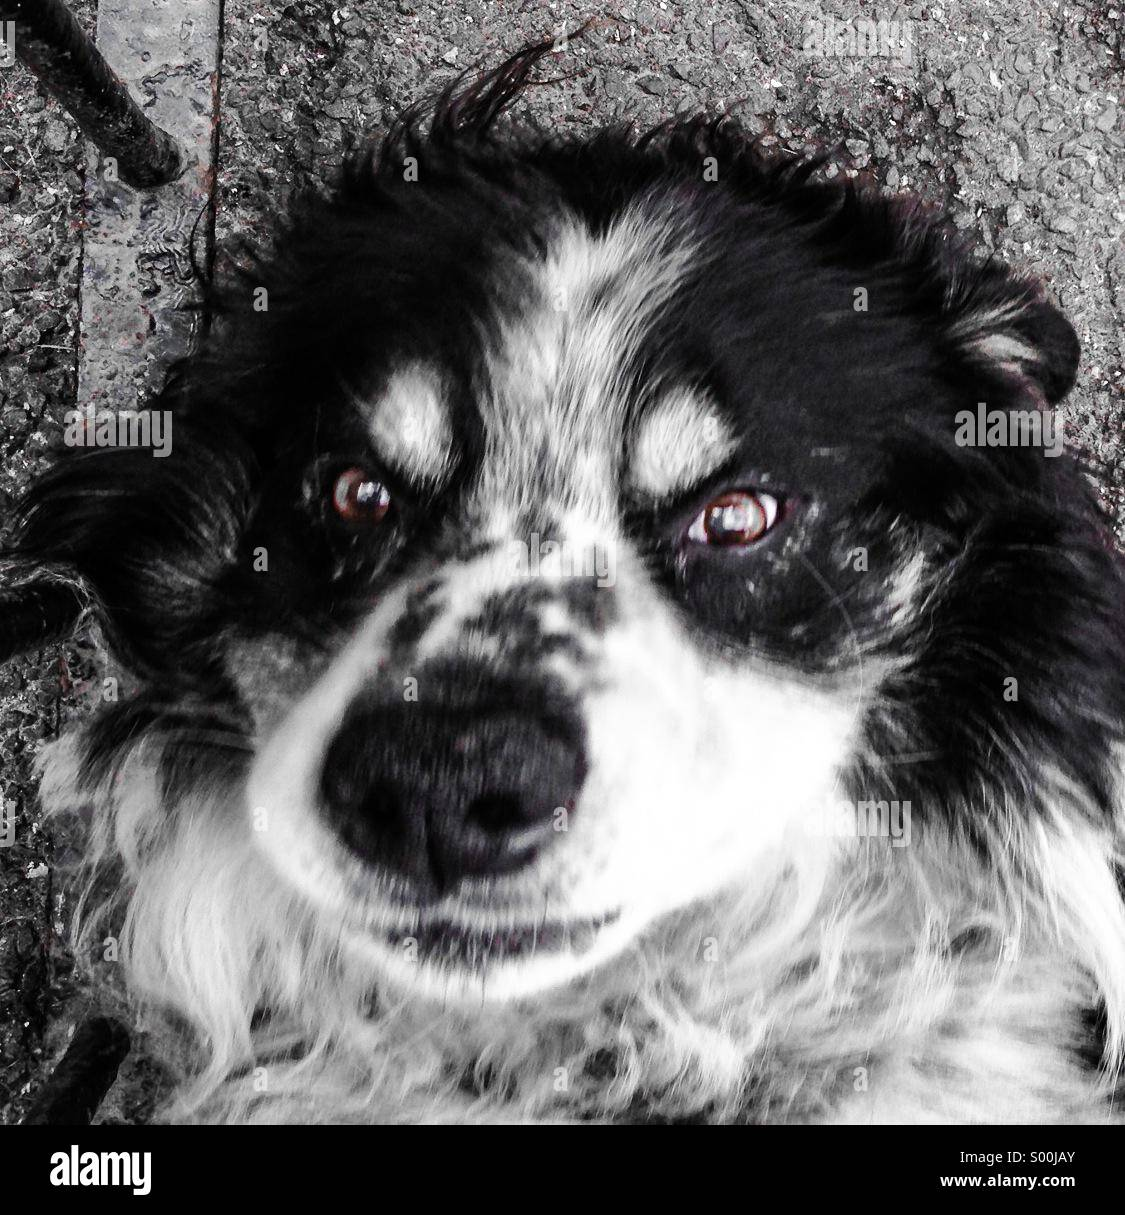 Collie Dog lying down looking straight up - Stock Image